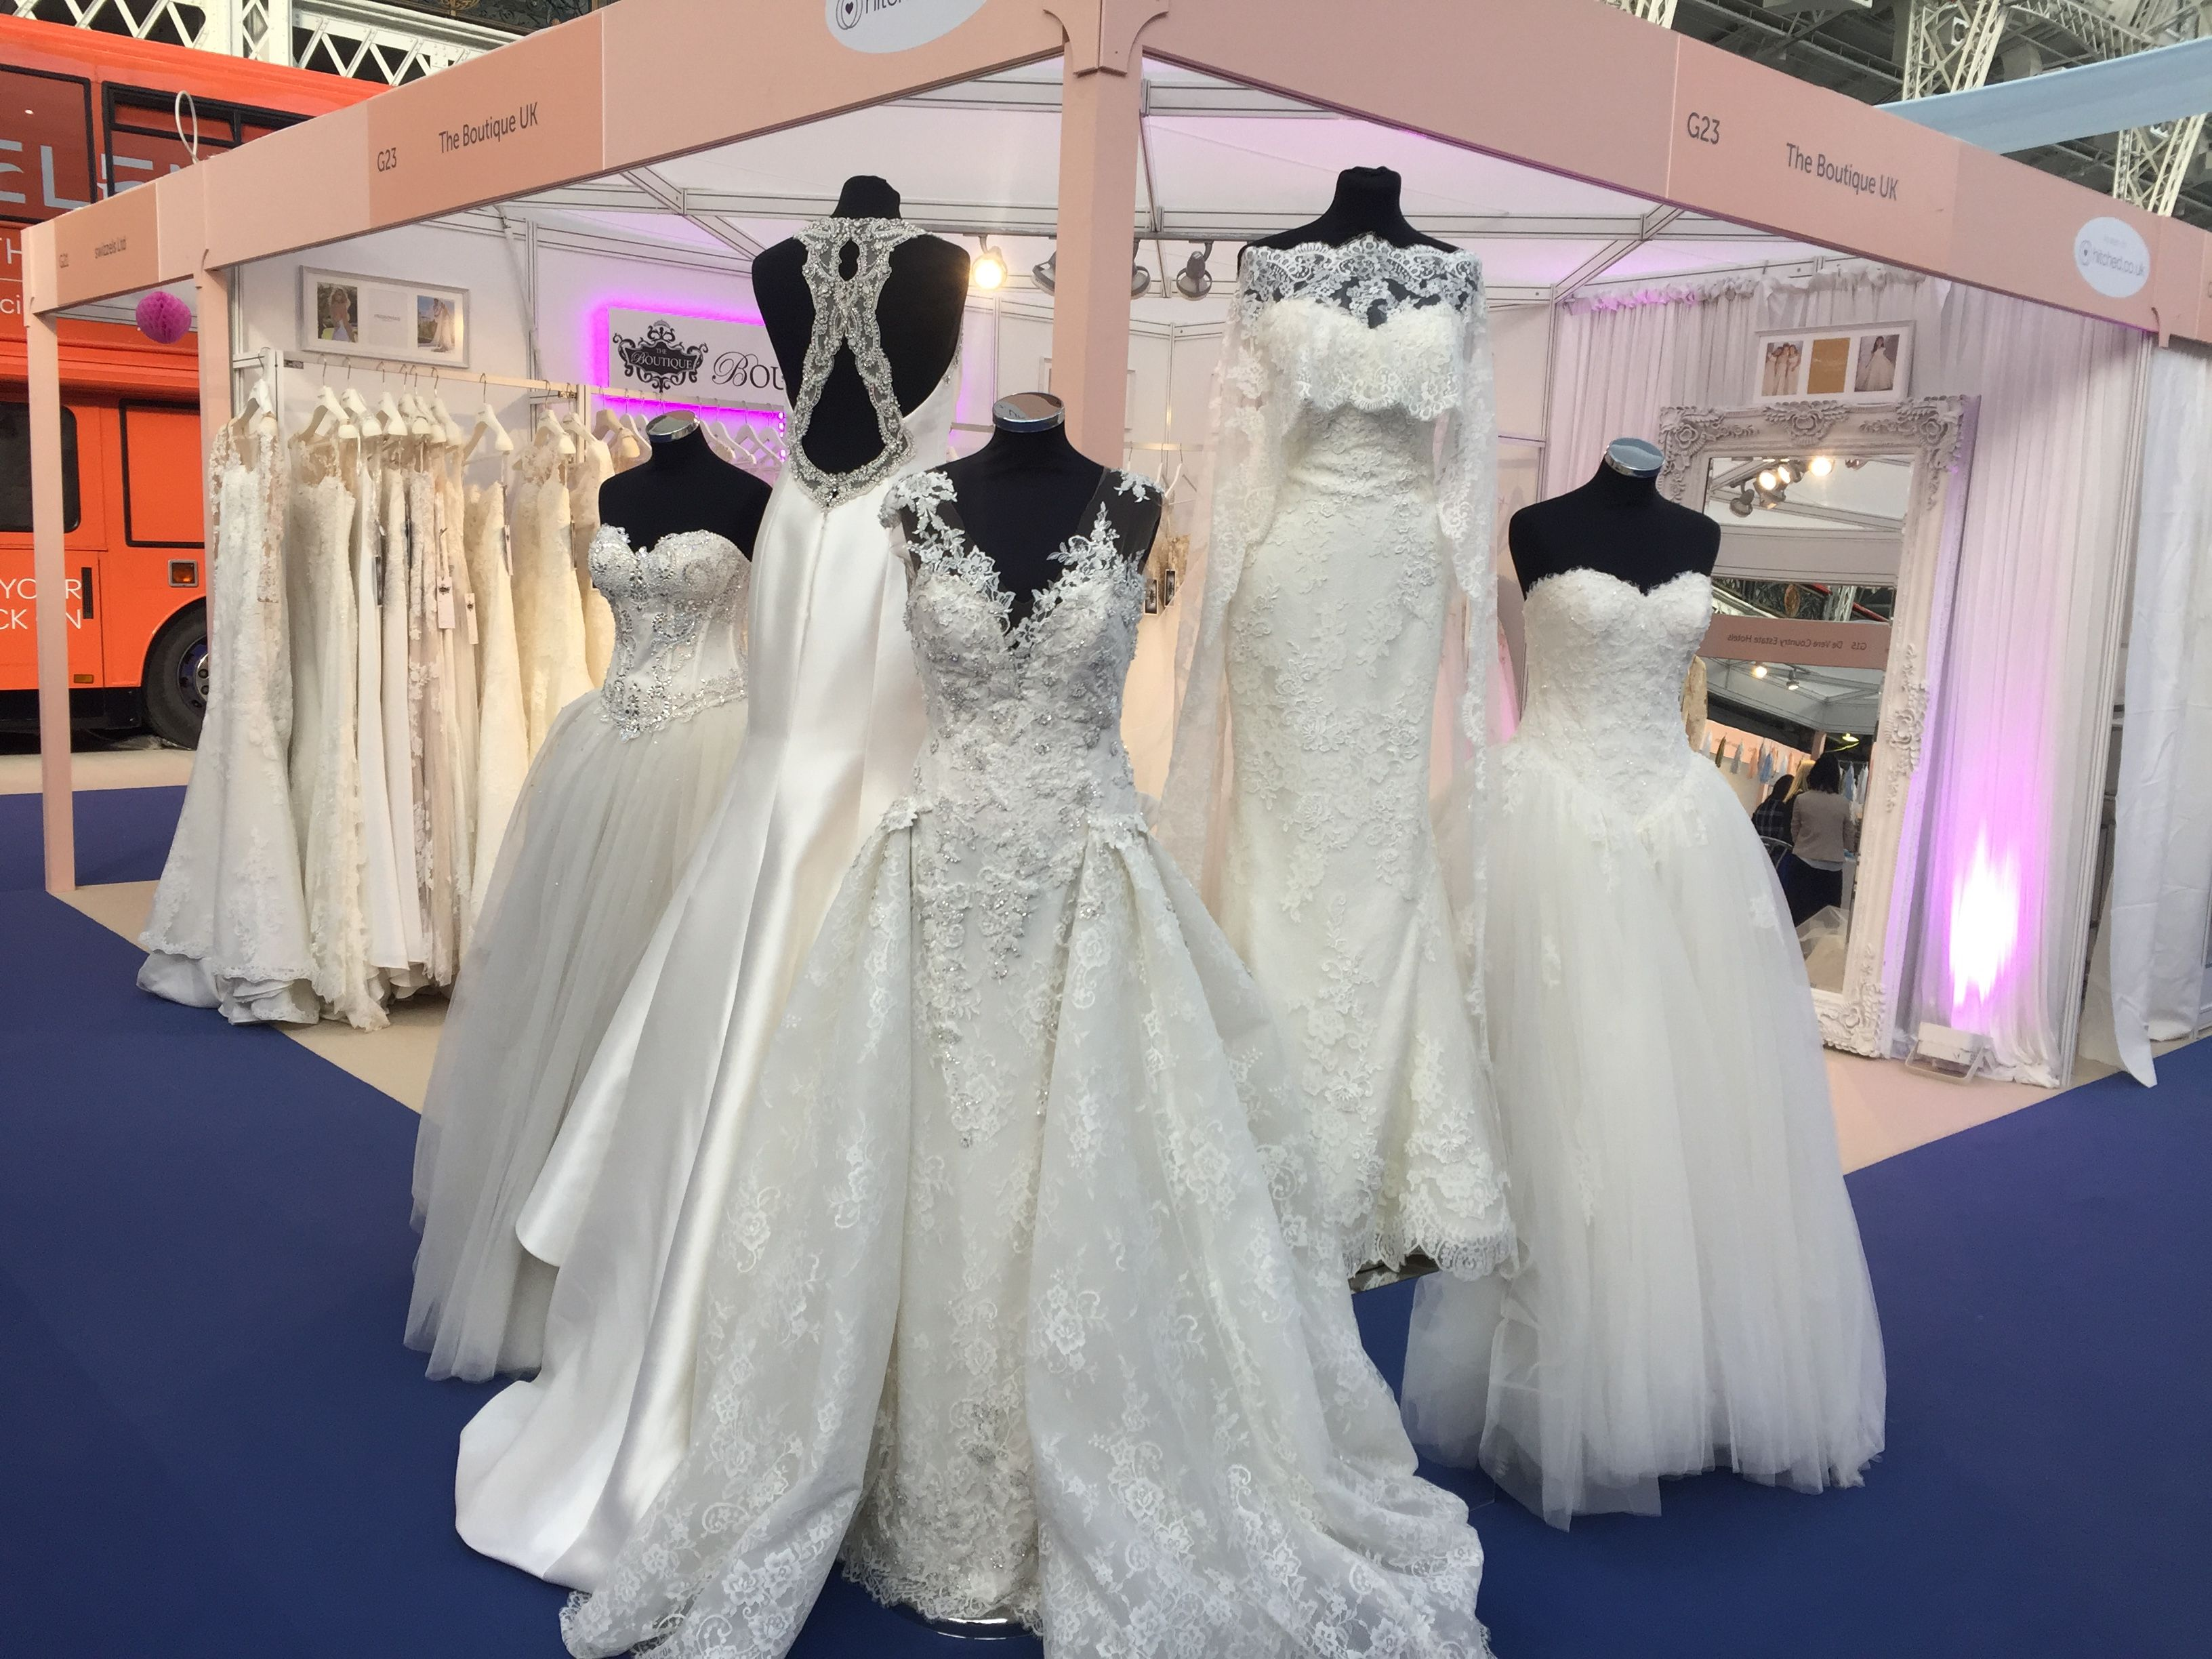 Our Stand At The National Wedding Show 2017 Www Theboutiqueuk 0208 616 4346